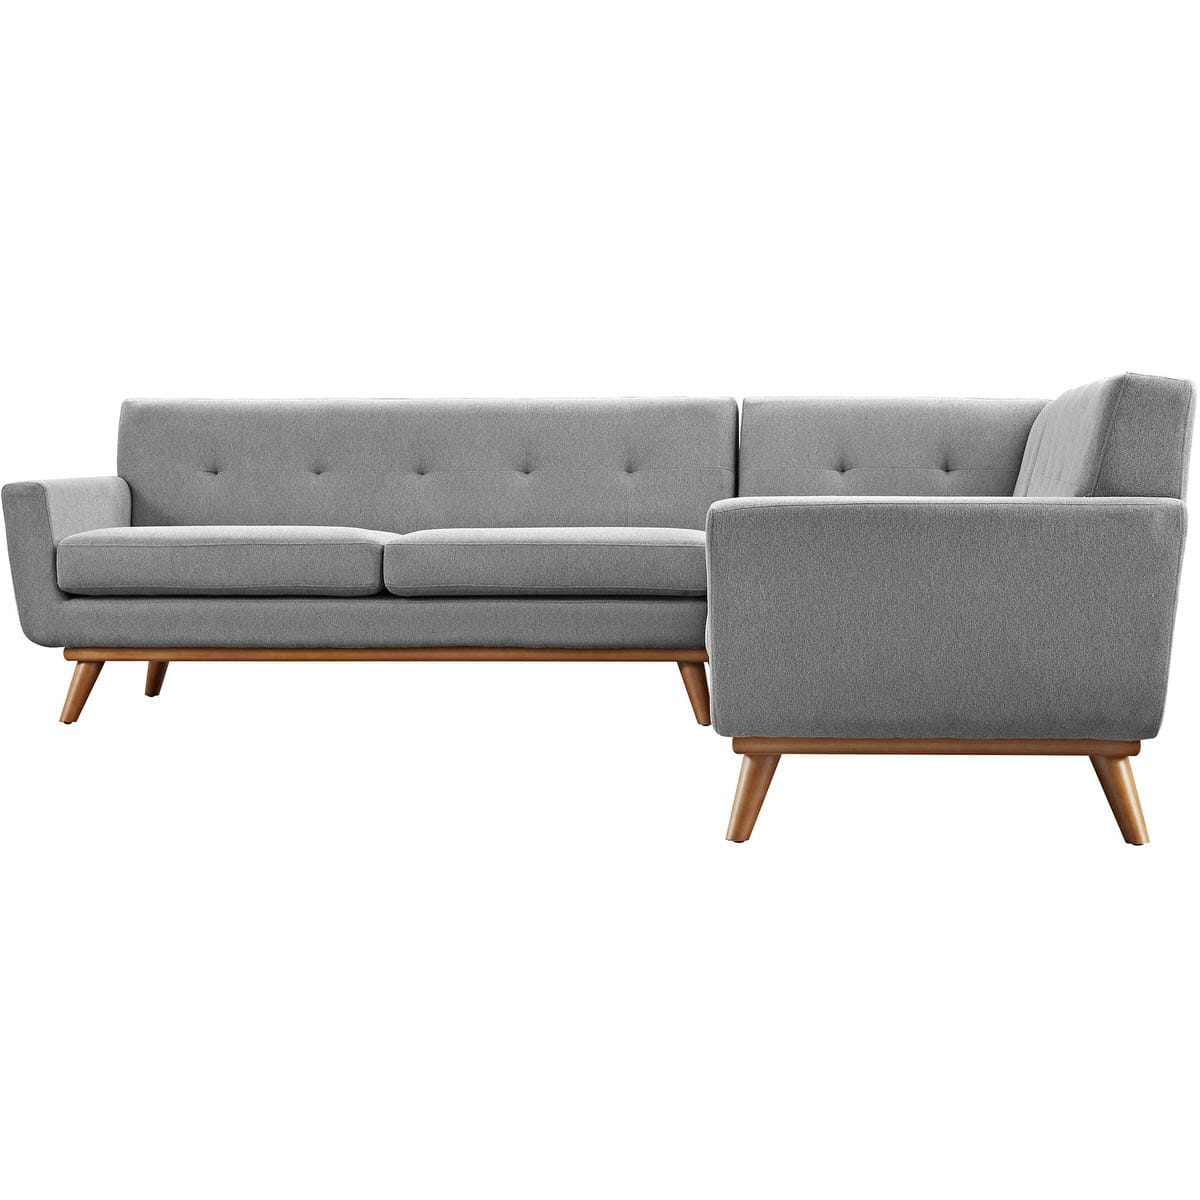 Engage L-Shaped Sectional Sofa Expectation Gray by Modern Living